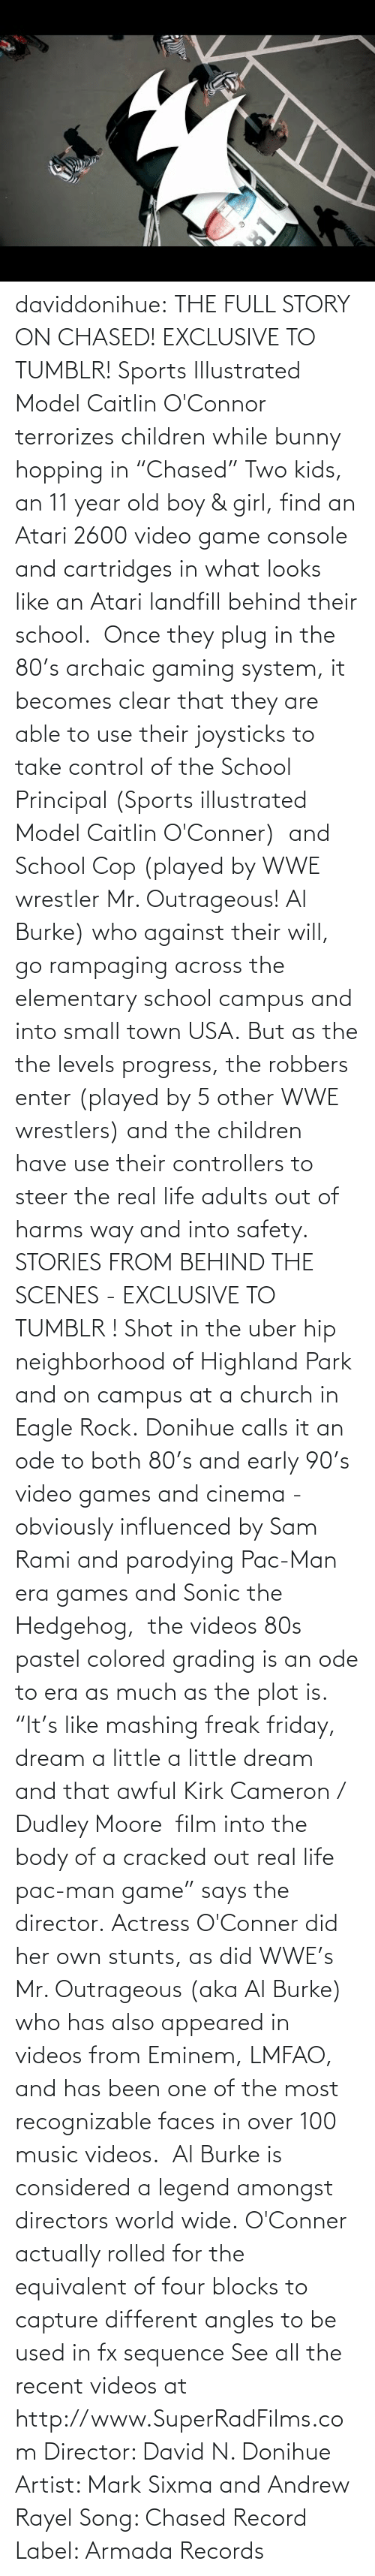 """wwe wrestlers: daviddonihue:  THE FULL STORY ON CHASED! EXCLUSIVE TO TUMBLR! Sports Illustrated Model Caitlin O'Connor terrorizes children while bunny hopping in """"Chased"""" Two kids, an 11 year old boy & girl, find an Atari 2600 video game console and cartridges in what looks like an Atari landfill behind their school. Once they plug in the 80's archaic gaming system, it becomes clear that they are able to use their joysticks to take control of the School Principal (Sports illustrated Model Caitlin O'Conner) and School Cop (played by WWE wrestler Mr. Outrageous! Al Burke) who against their will, go rampaging across the elementary school campus and into small town USA. But as the the levels progress, the robbers enter (played by 5 other WWE wrestlers) and the children have use their controllers to steer the real life adults out of harms way and into safety.    STORIES FROM BEHIND THE SCENES - EXCLUSIVE TO TUMBLR ! Shot in the uber hip neighborhood of Highland Park and on campus at a church in Eagle Rock. Donihue calls it an ode to both 80's and early 90's video games and cinema - obviously influenced by Sam Rami and parodying Pac-Man era games and Sonic the Hedgehog, the videos 80s pastel colored grading is an ode to era as much as the plot is. """"It's like mashing freak friday, dream a little a little dream and that awful Kirk Cameron / Dudley Moore film into the body of a cracked out real life pac-man game"""" says the director. Actress O'Conner did her own stunts, as did WWE's Mr. Outrageous (aka Al Burke) who has also appeared in videos from Eminem, LMFAO, and has been one of the most recognizable faces in over 100 music videos. Al Burke is considered a legend amongst directors world wide. O'Conner actually rolled for the equivalent of four blocks to capture different angles to be used in fx sequence See all the recent videos at http://www.SuperRadFilms.com Director: David N. Donihue Artist: Mark Sixma and Andrew Rayel Song: Chased Record Label: Armada Records"""